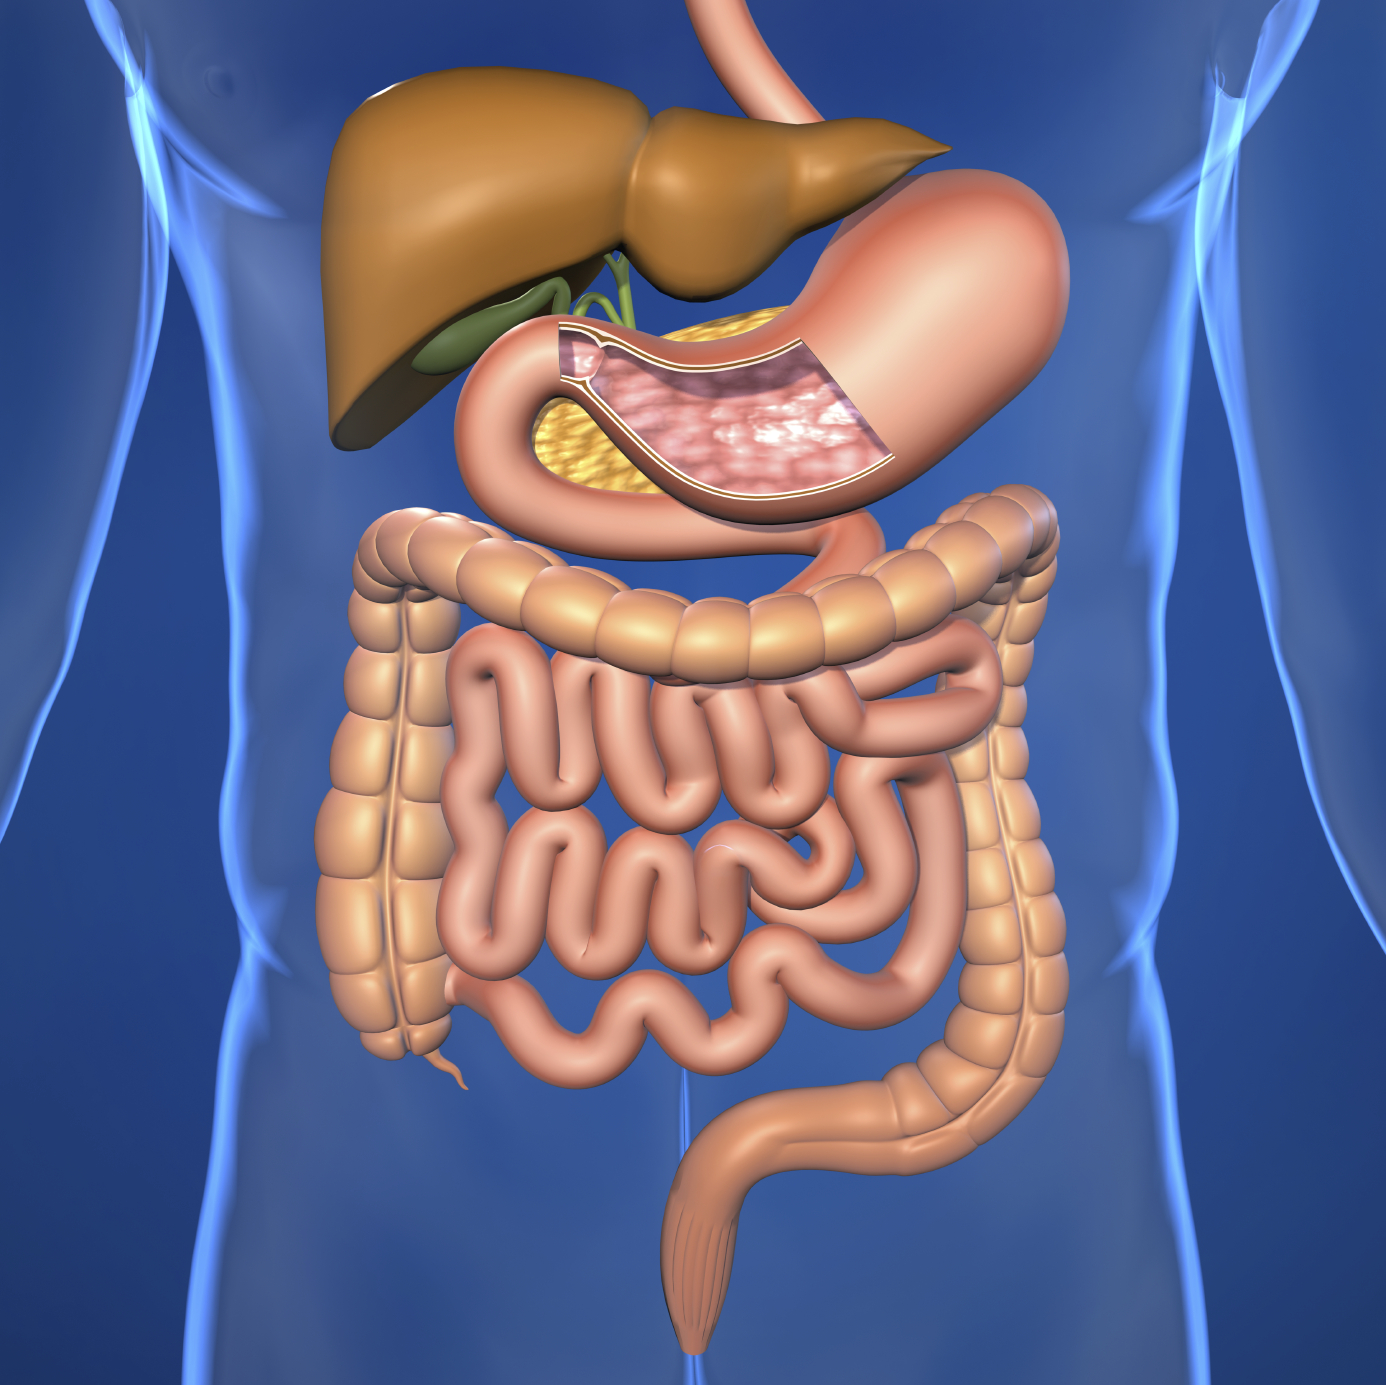 Human Digestive System For Ks1 And Ks2 Children Human Digestive